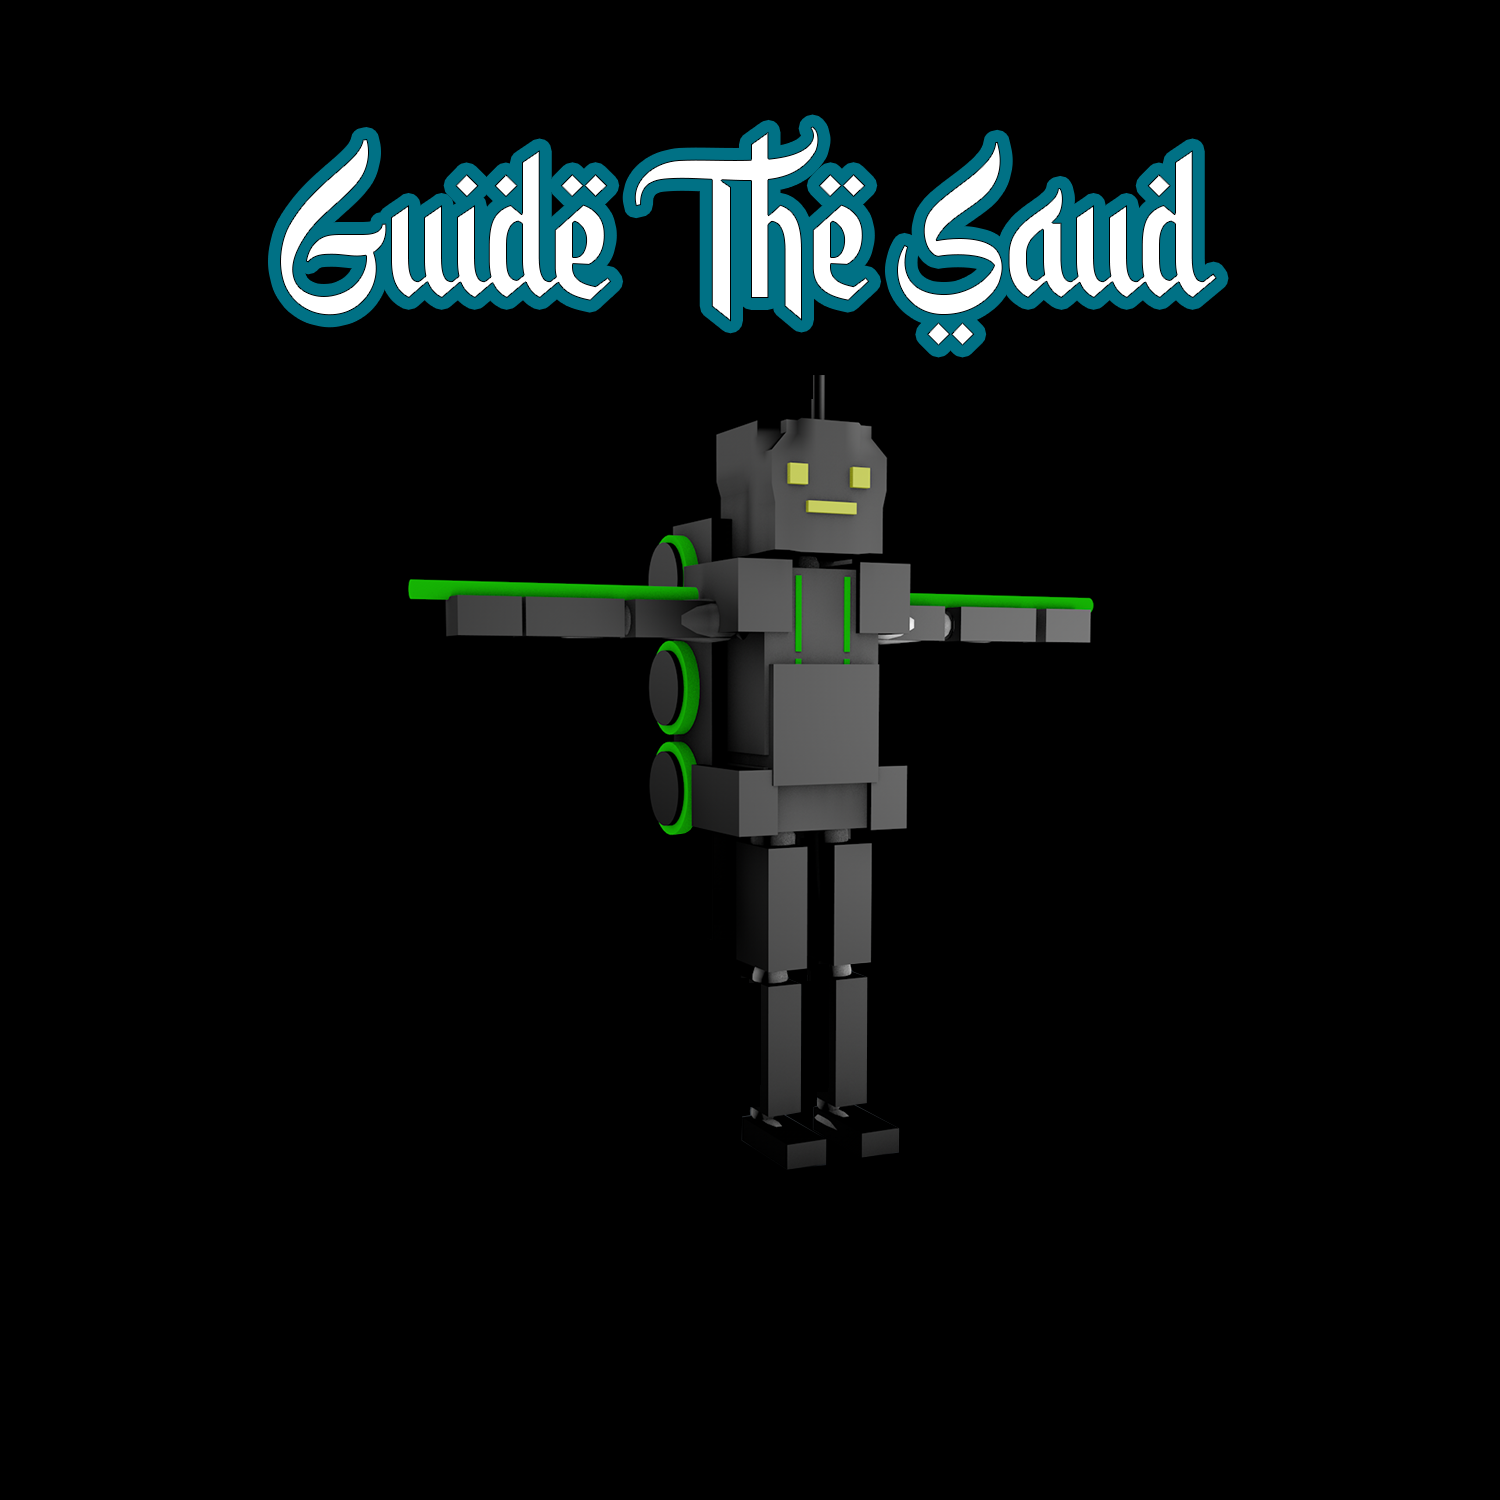 Guide the Saud